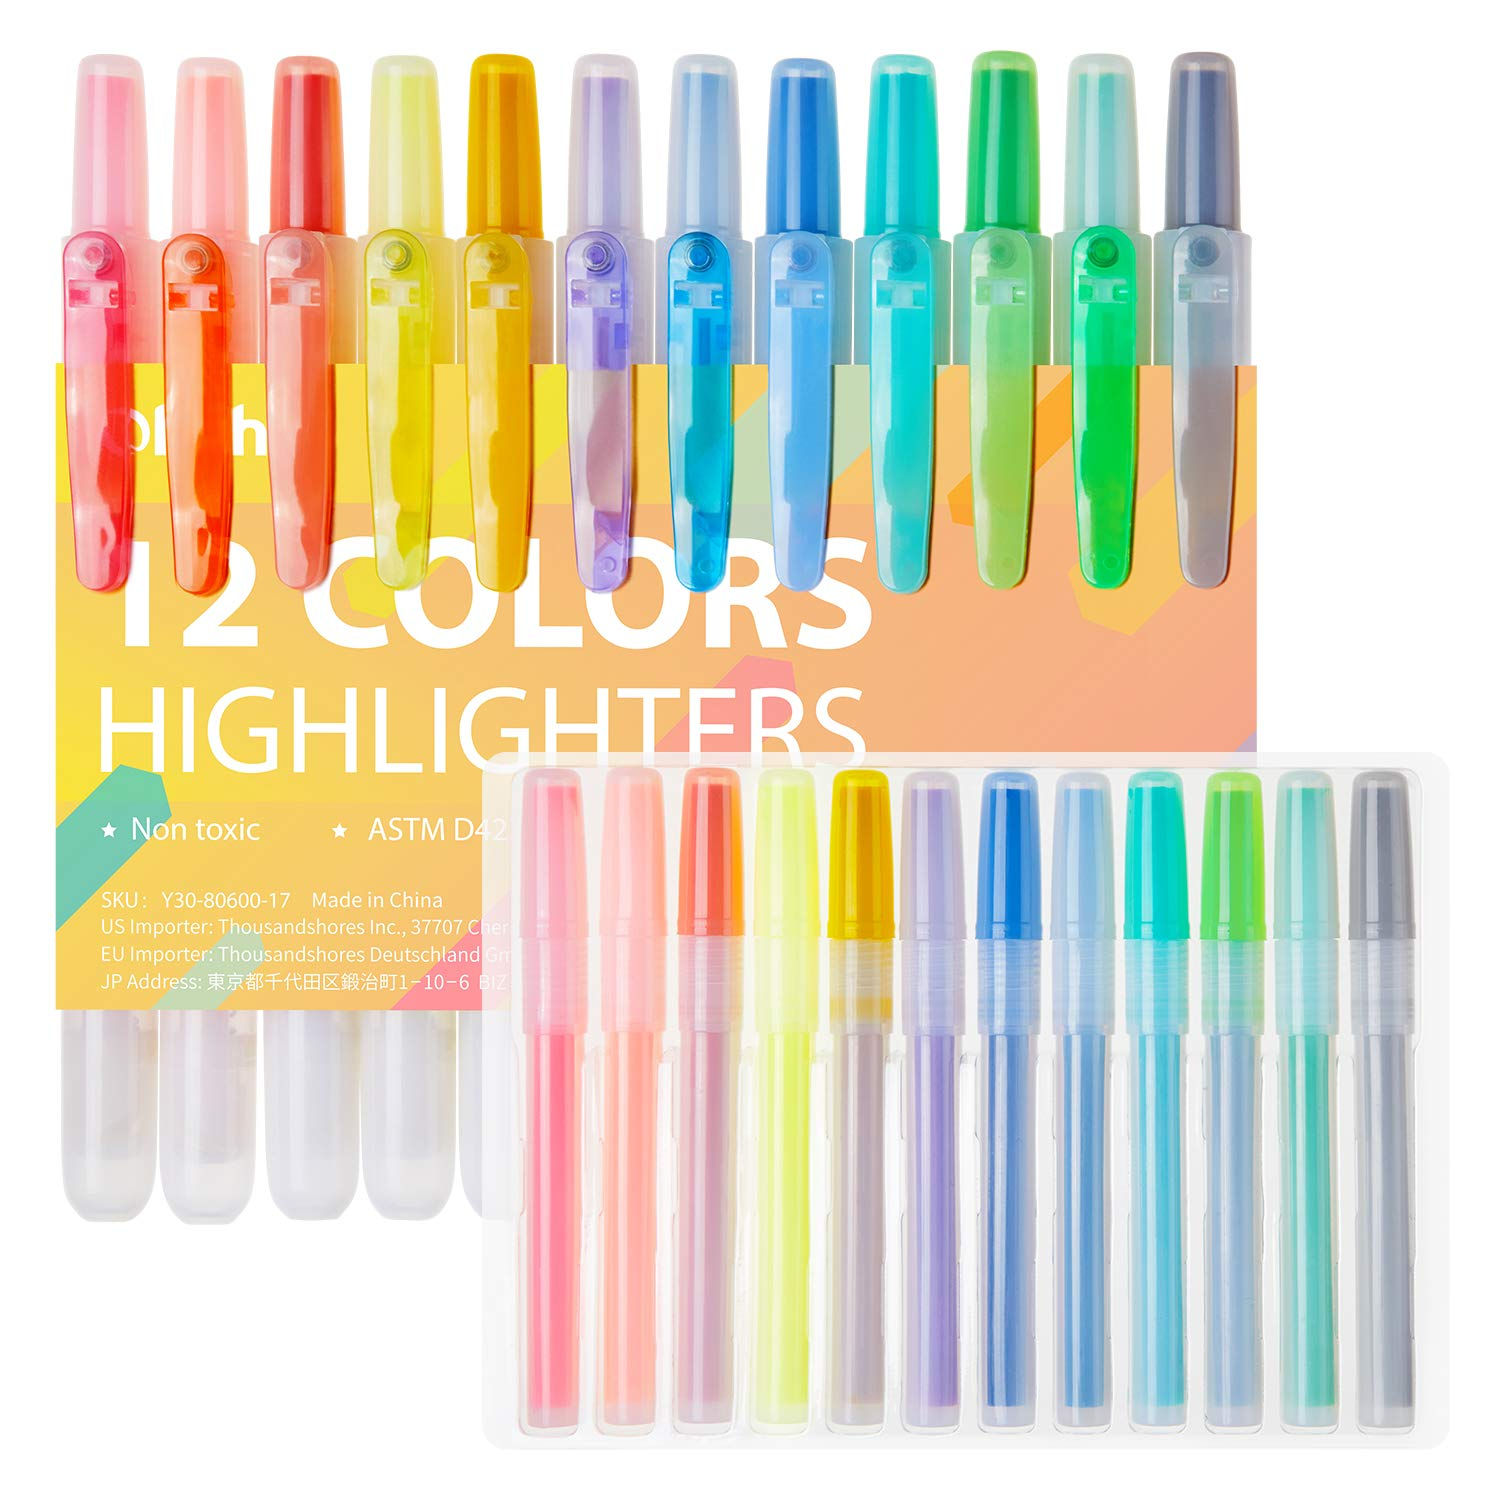 24 Packs Highlighter Markers, Ohuhu 12 Colors + 12 Replacement Refills, Chisel Tip Highlighters, Assorted Soft & Fluorescents Colors Bible Marker for Adults Kids Journaling Study Back To School Gifts